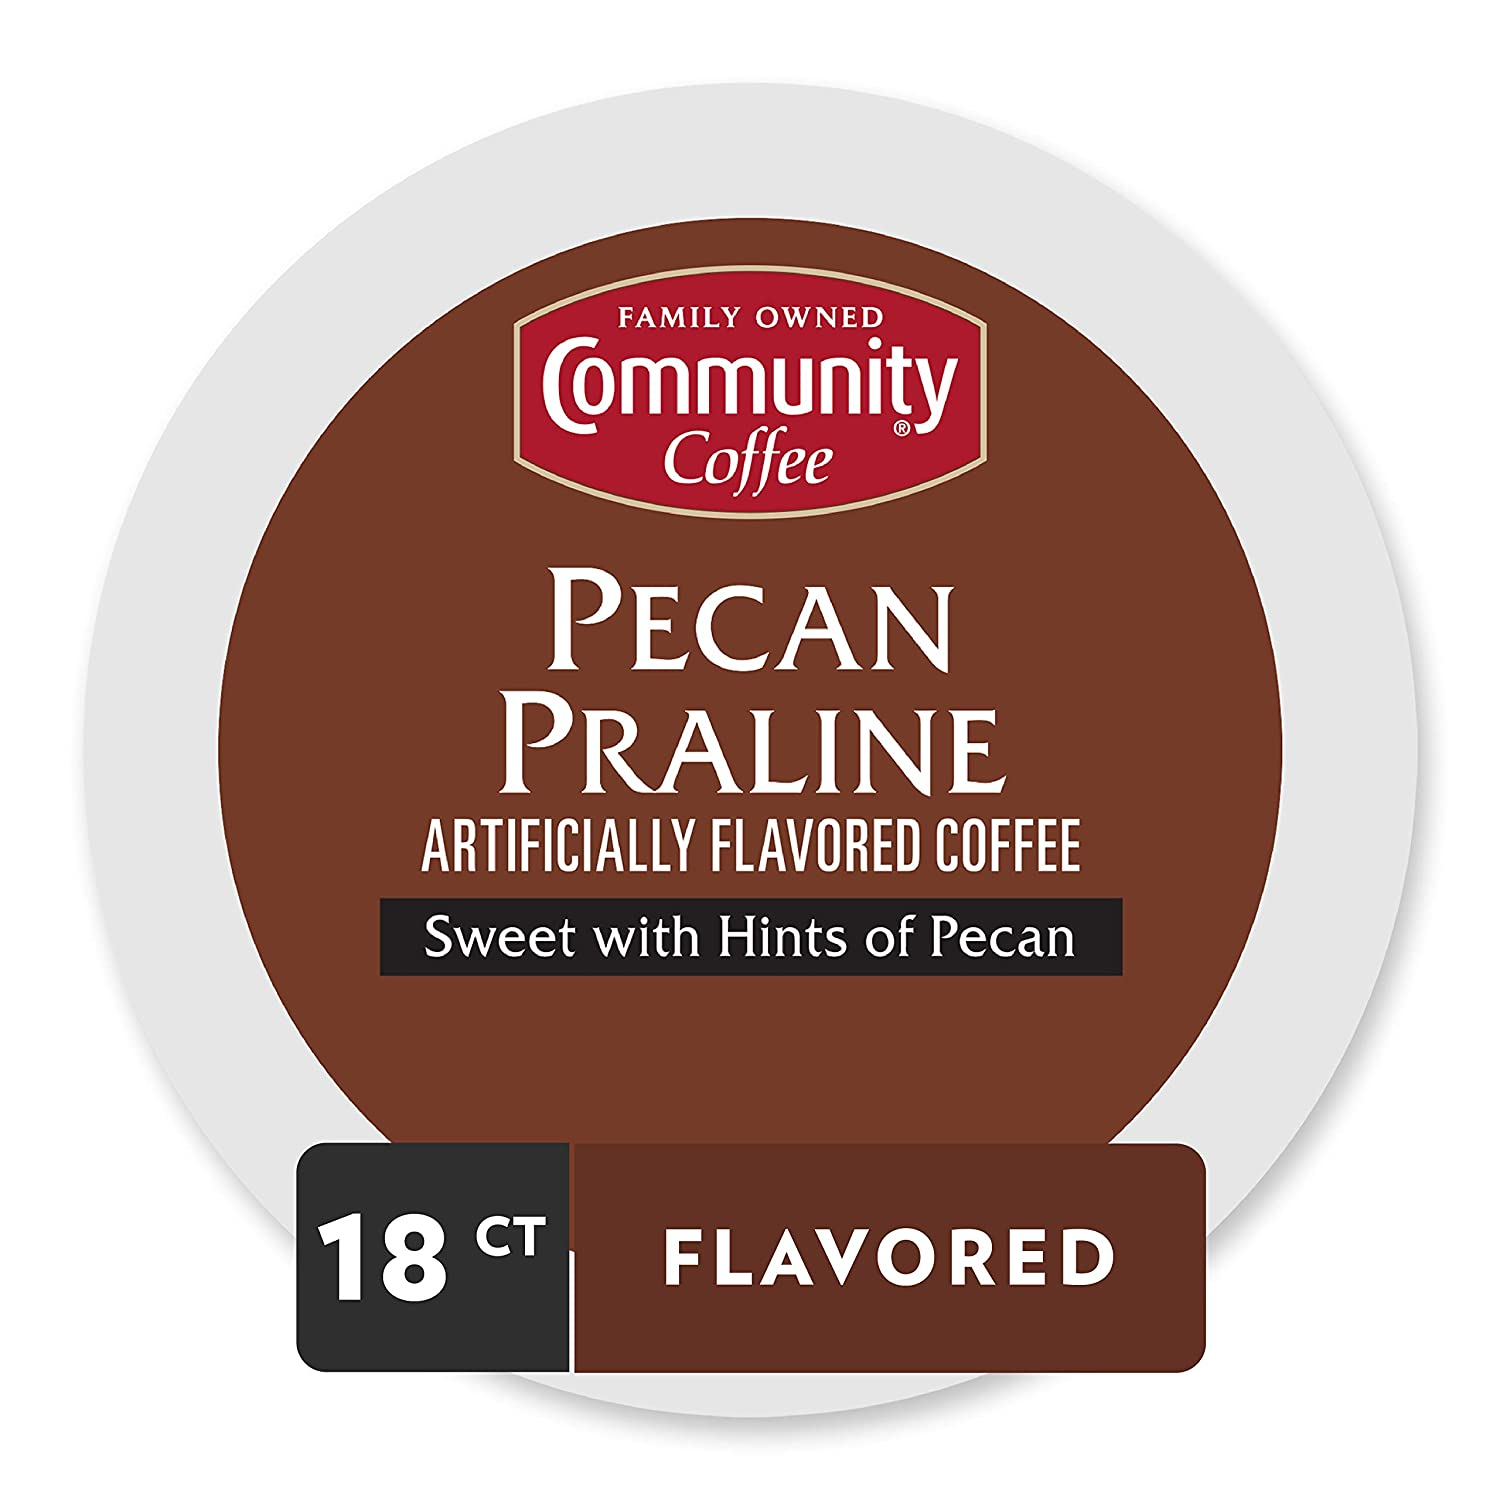 Community Coffee Pecan Praline Flavored Medium Roast Single Serve 18 Ct Box, Compatible with Keurig 2.0 K Cup Brewers, Medium Full Body Sweet Hints of Pecan, 100% Arabica Coffee Beans